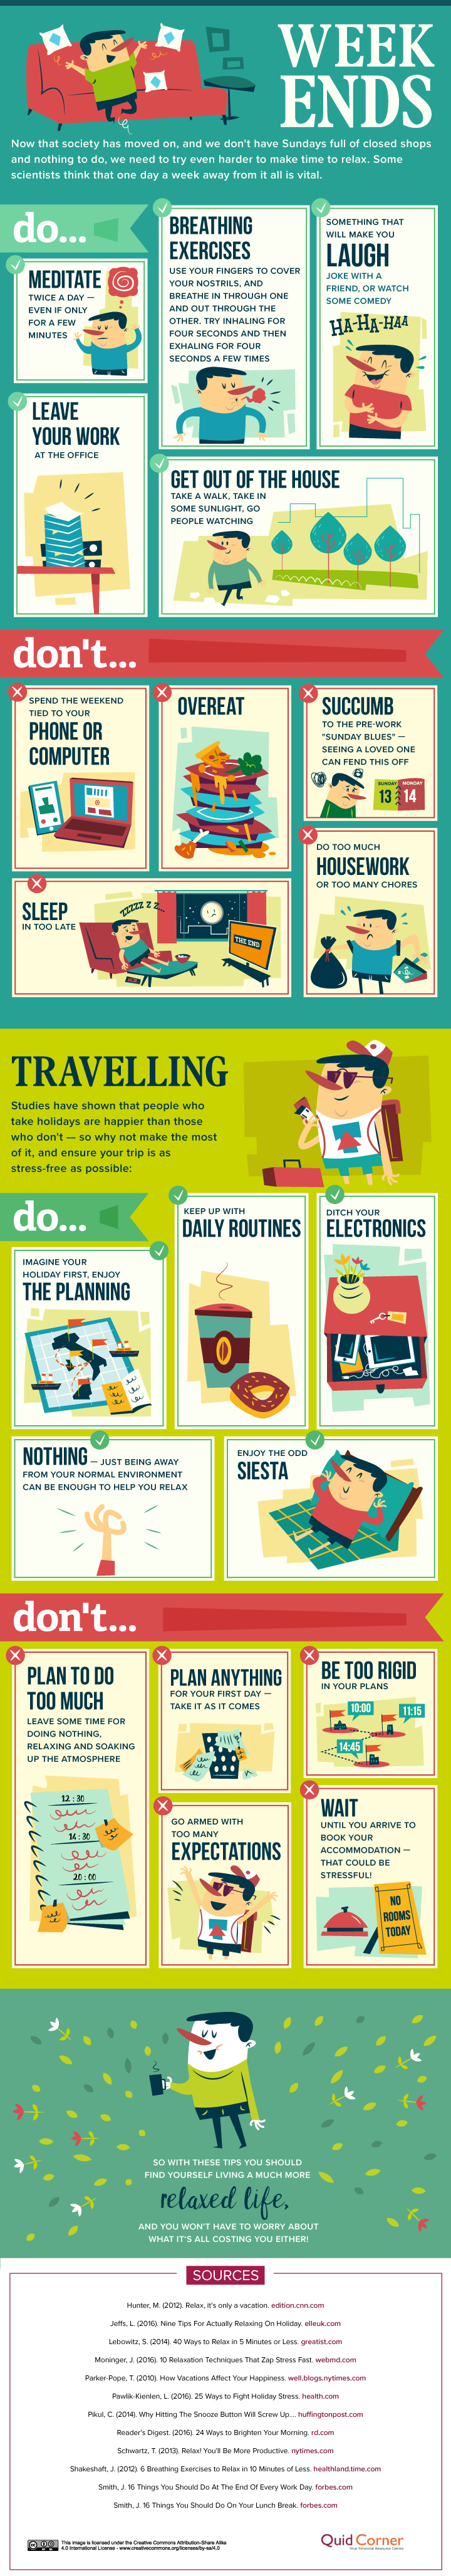 50 ways to relax without spending